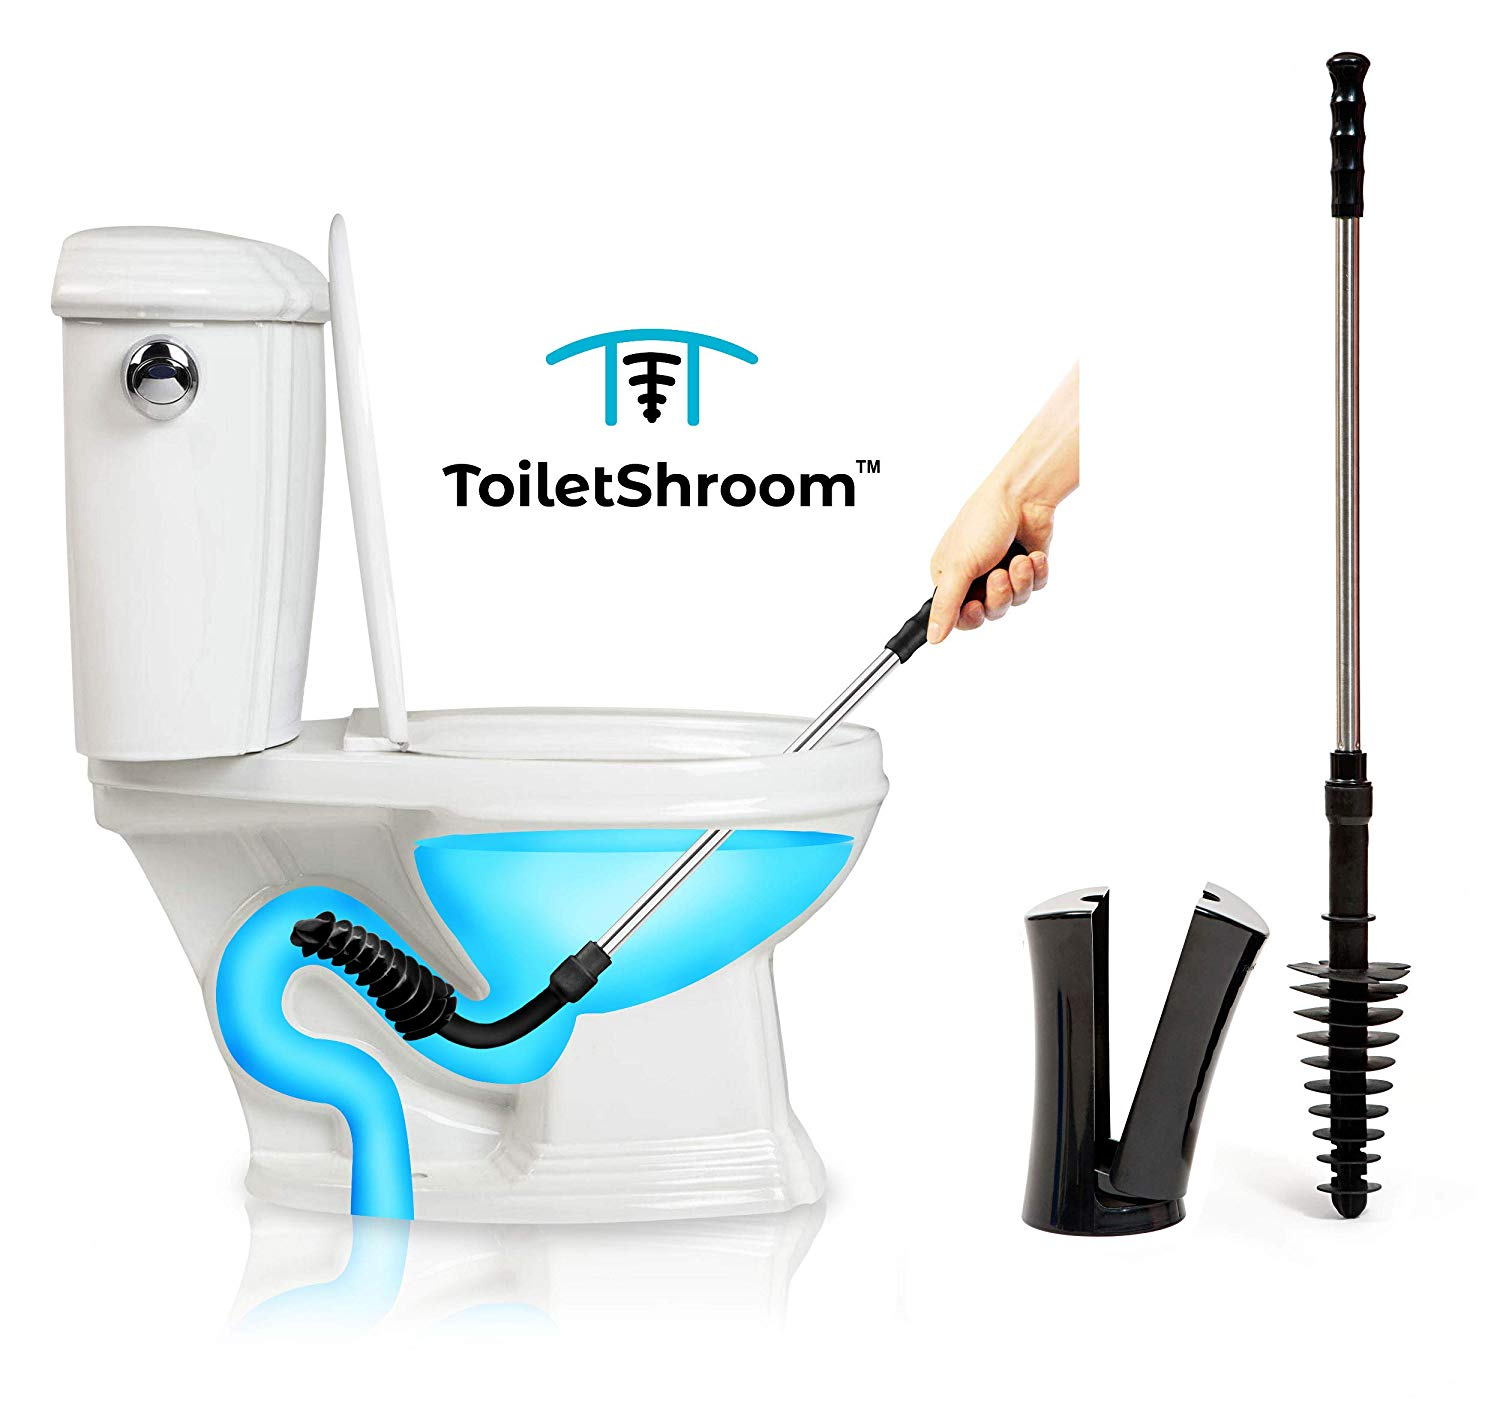 ToiletShroom Revolutionary Plunger, Squeegee, Clog Remover, Drain Cleaner, Bathroom Toilet Dredge Tool, Stainless Steel Handle with Caddy Holder, Black